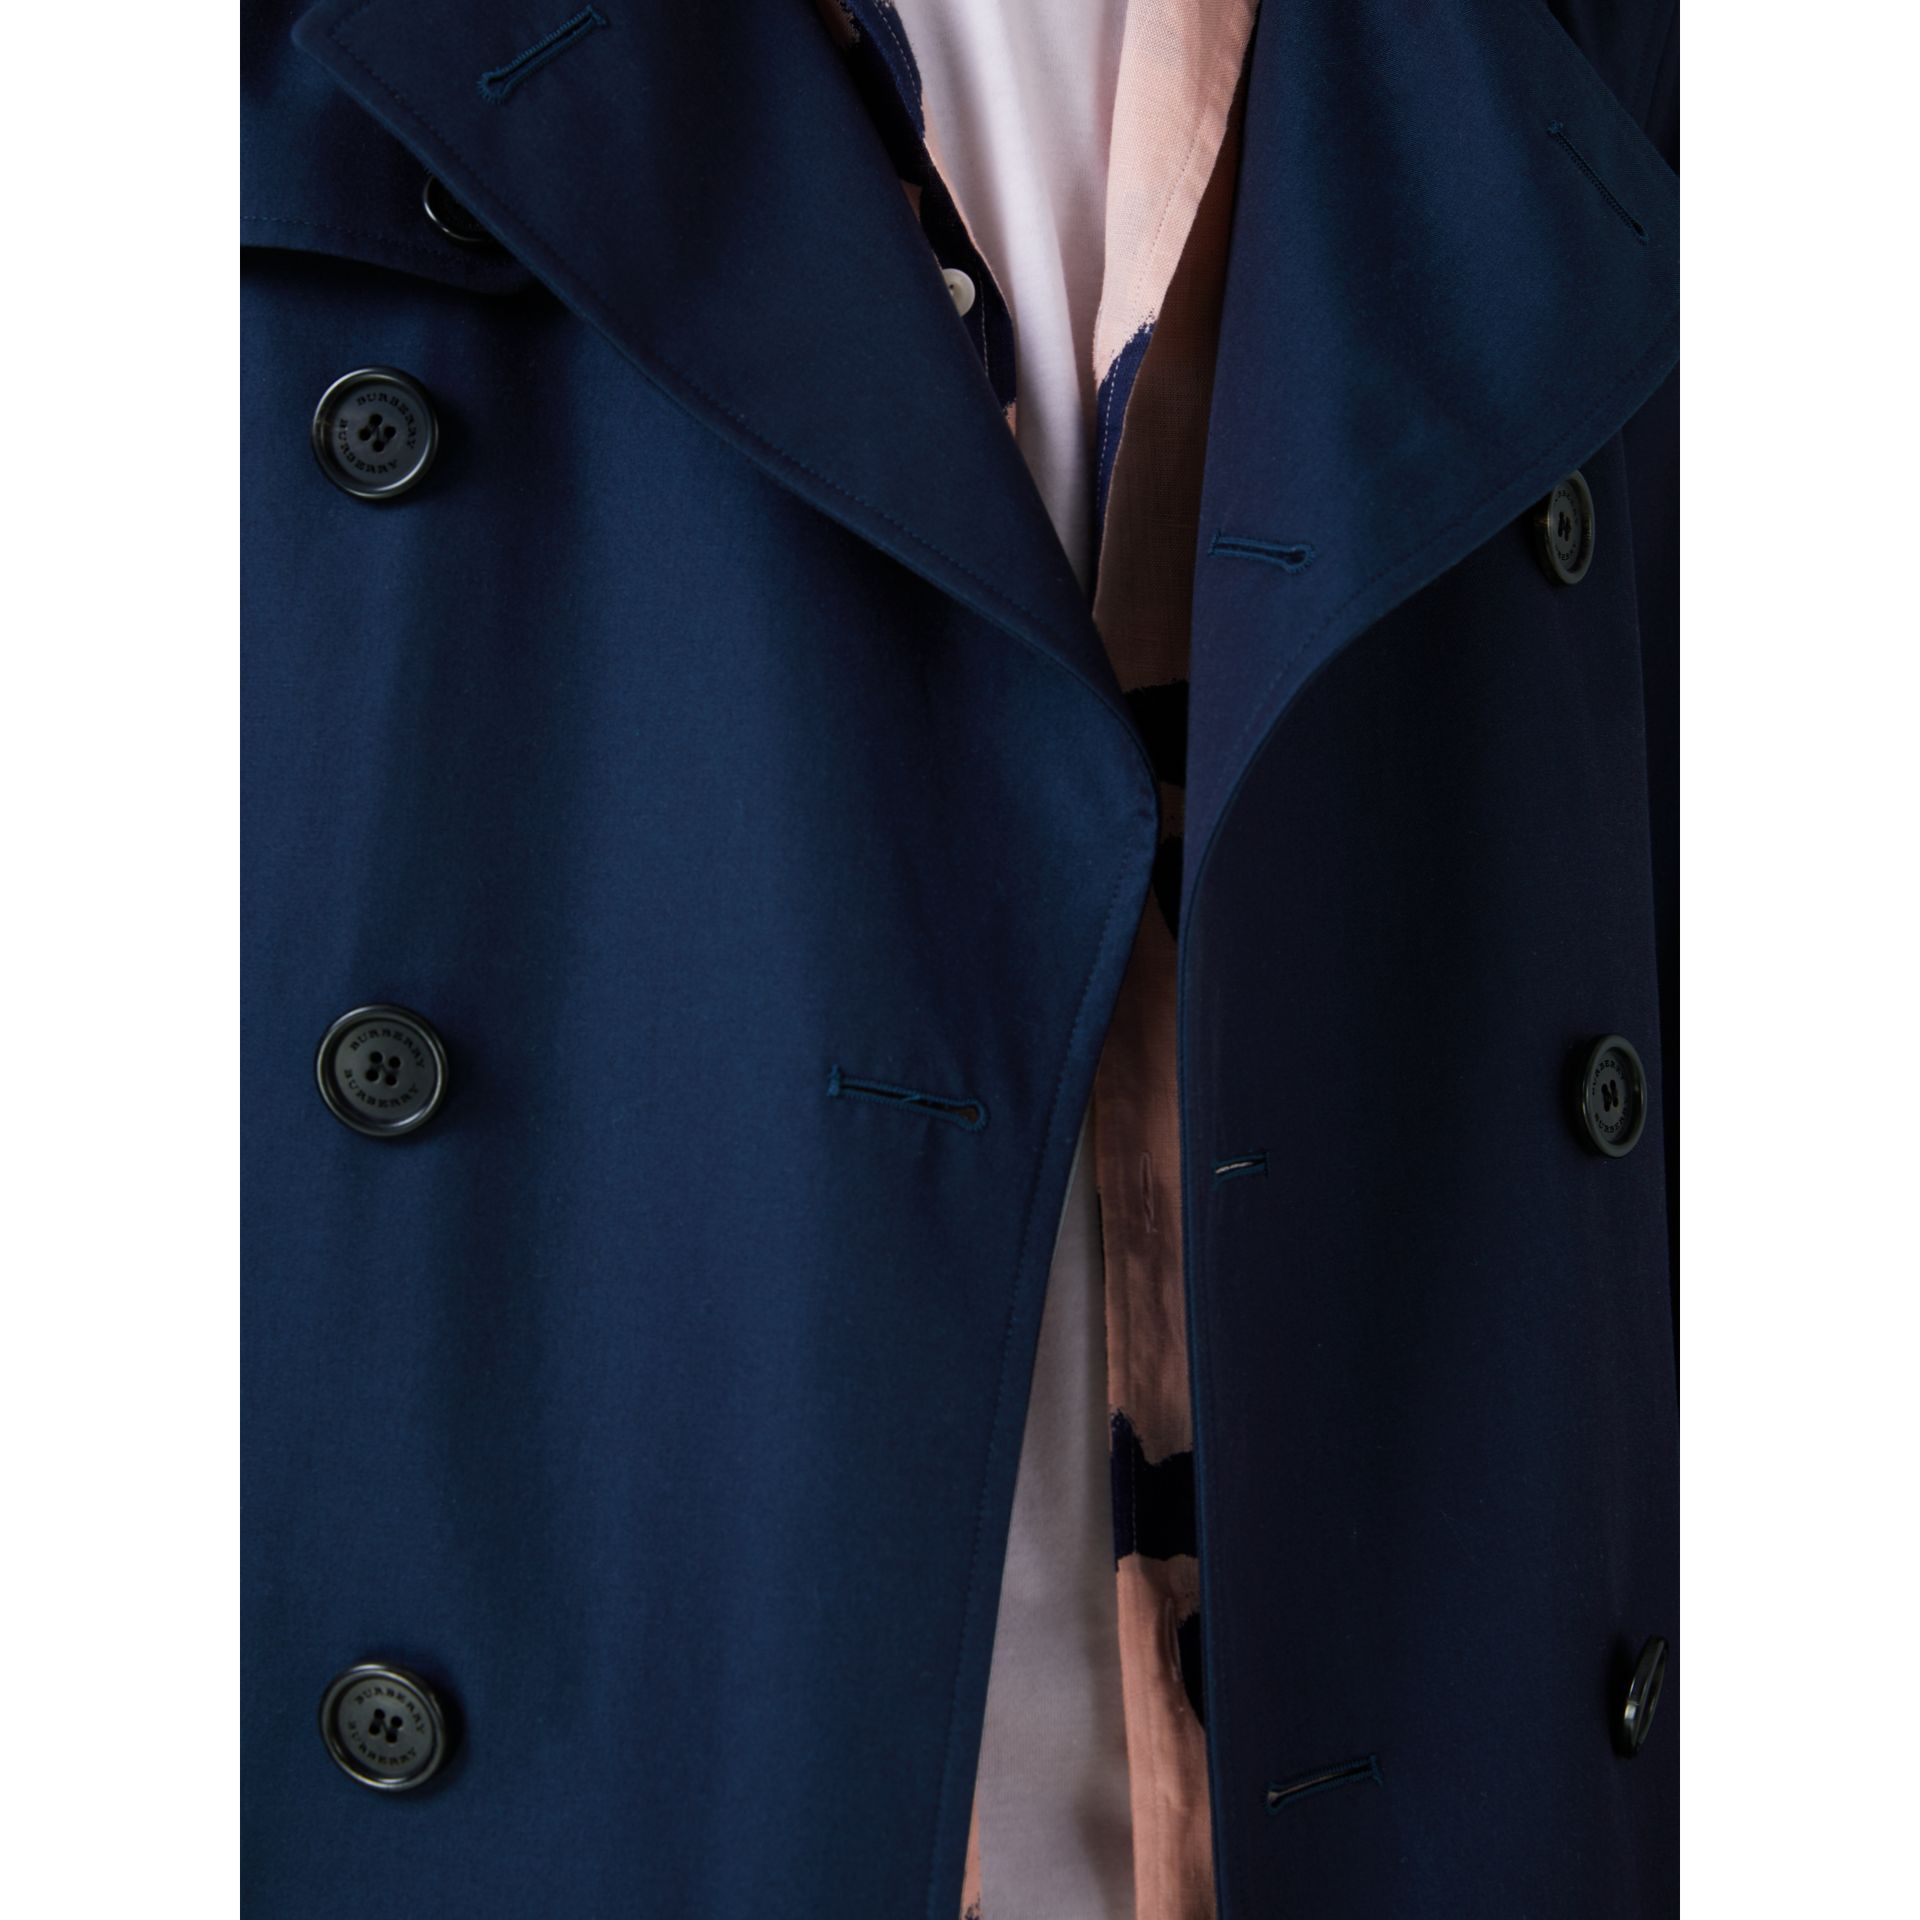 Cotton Gabardine Trench Coat in Teal Blue - Men | Burberry Australia - gallery image 4